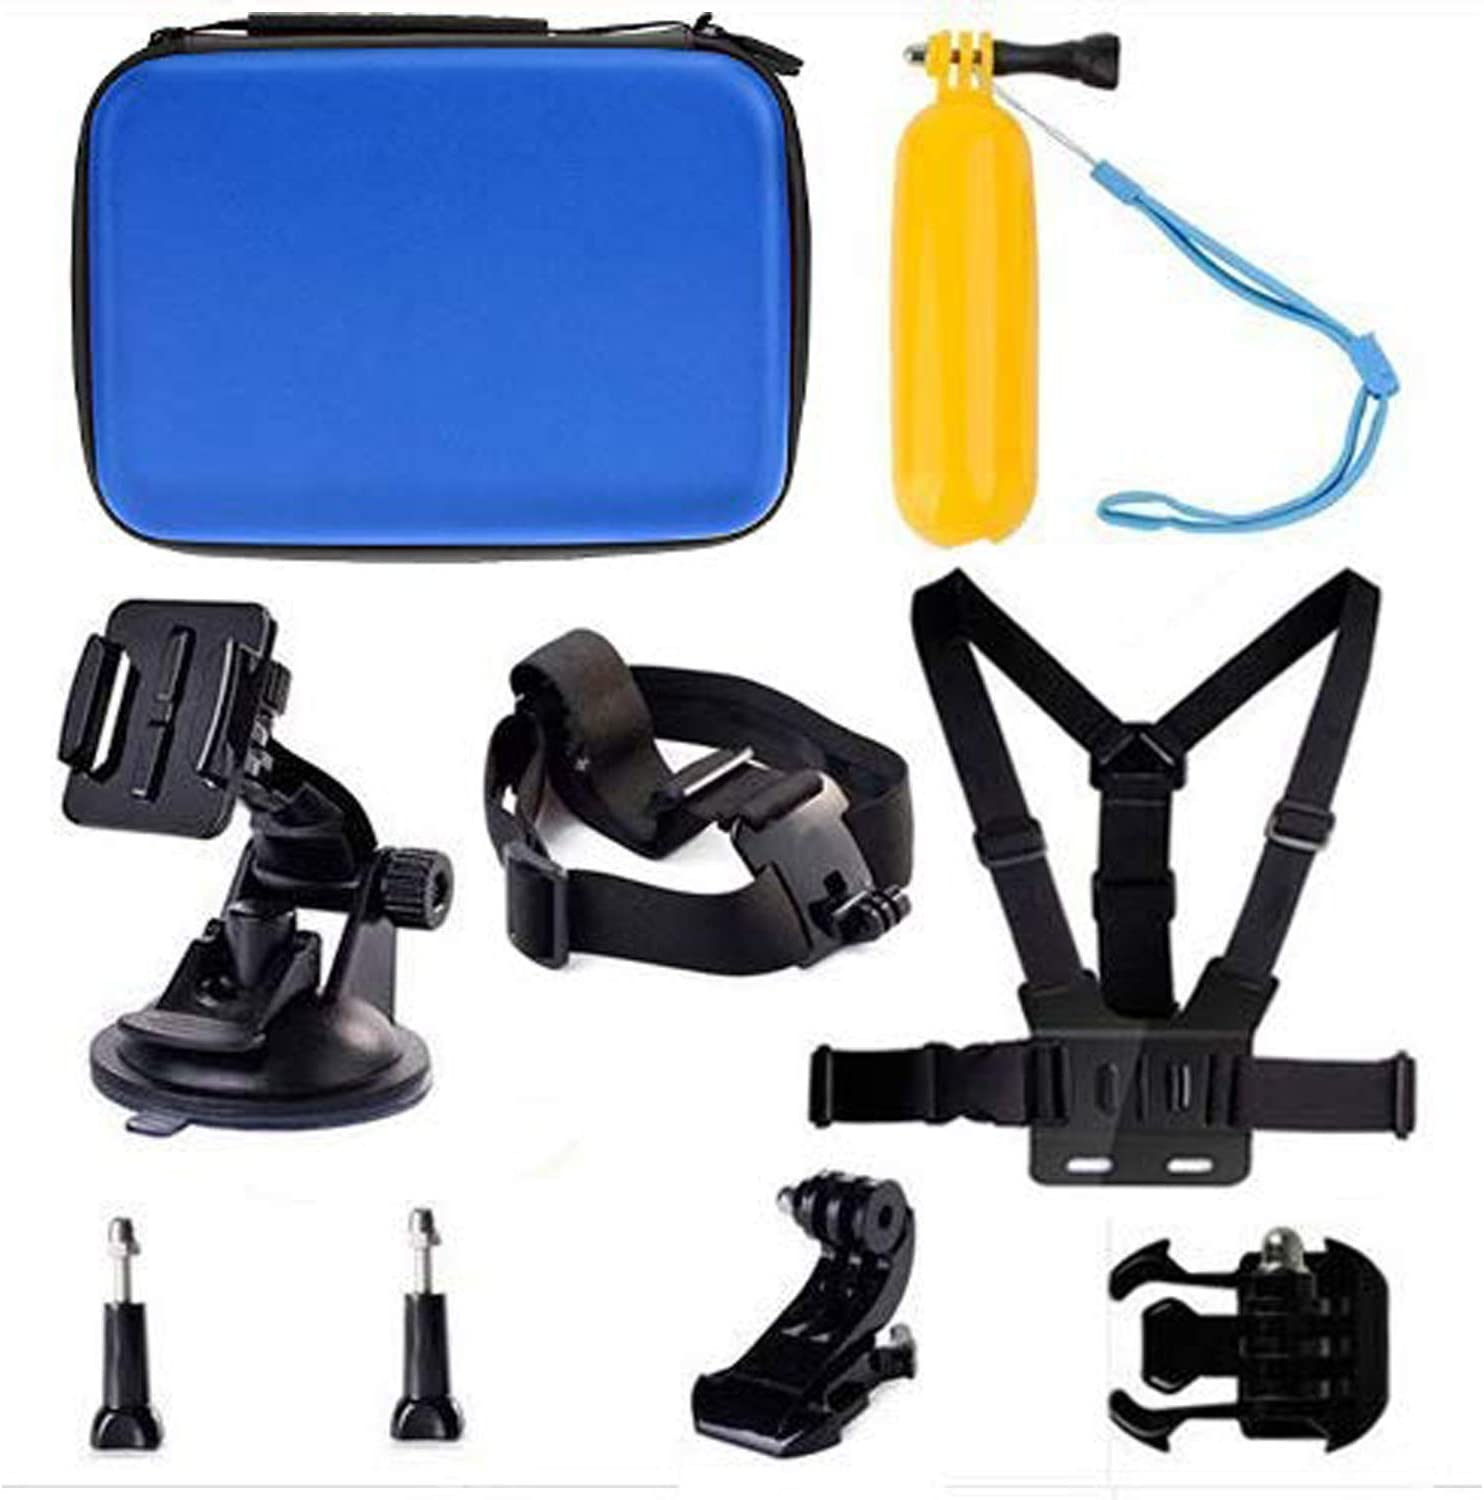 Navitech 9 in 1 Action Camera Accessory Combo Kit and Rugged Blue Storage Case Compatible with The Eken Pano V6 Action Camera